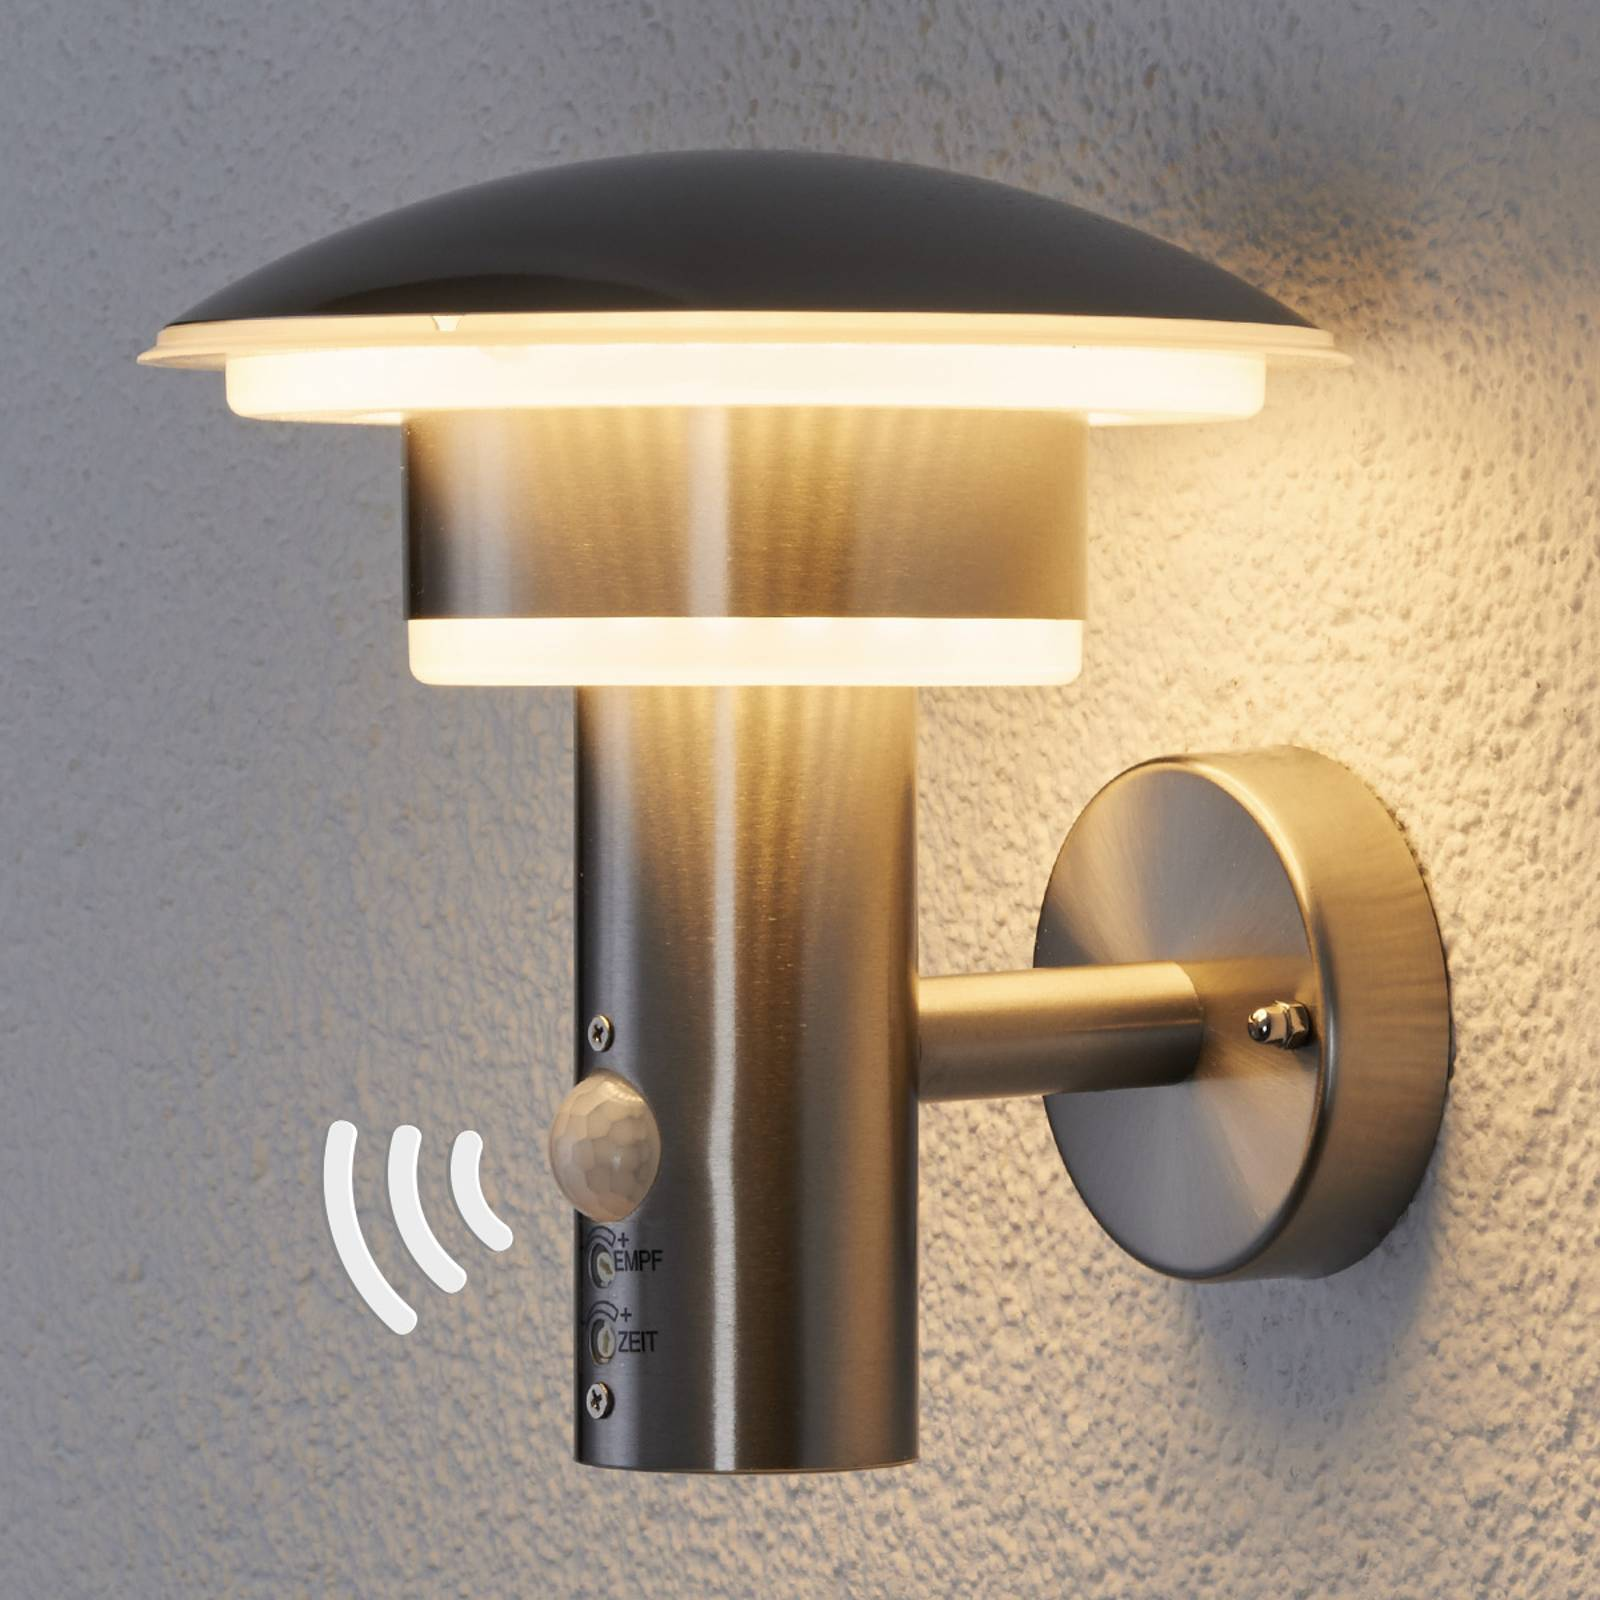 PIR outdoor wall light Lillie with LEDs from Lampenwelt.com